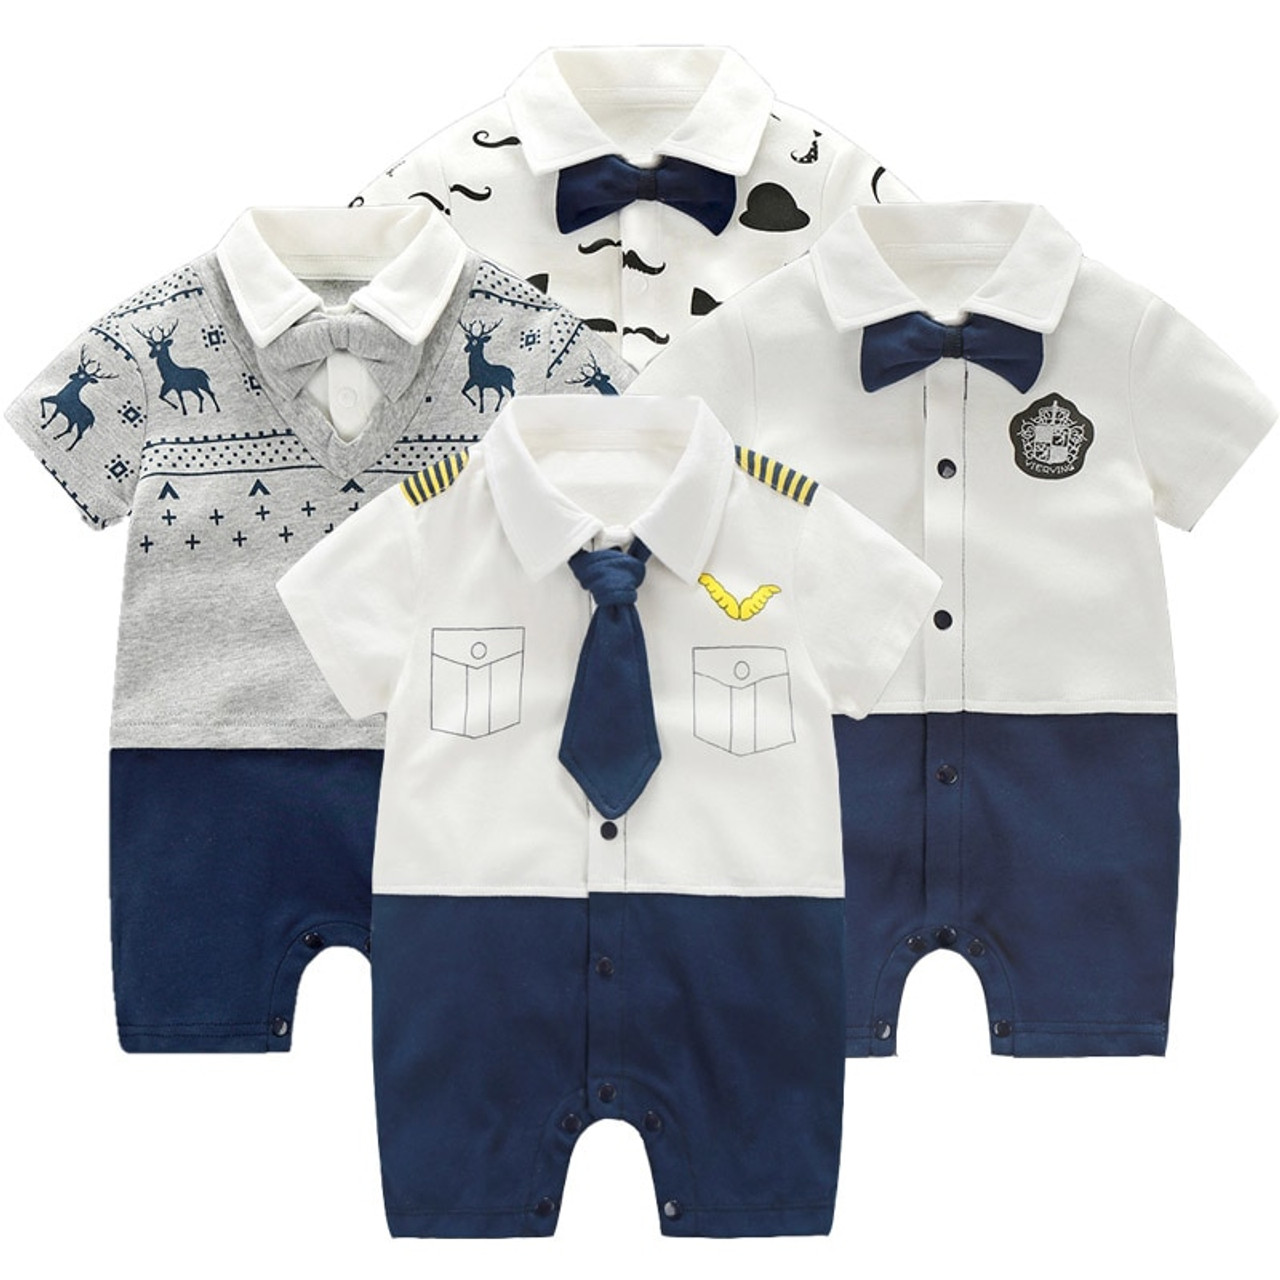 44e21befbcd2 Newborn Clothing Baby Boy Clothes Bow Tie Baby Jumpsuits Roupas Bebe Little Gentleman  Baby Boy Rompers ...